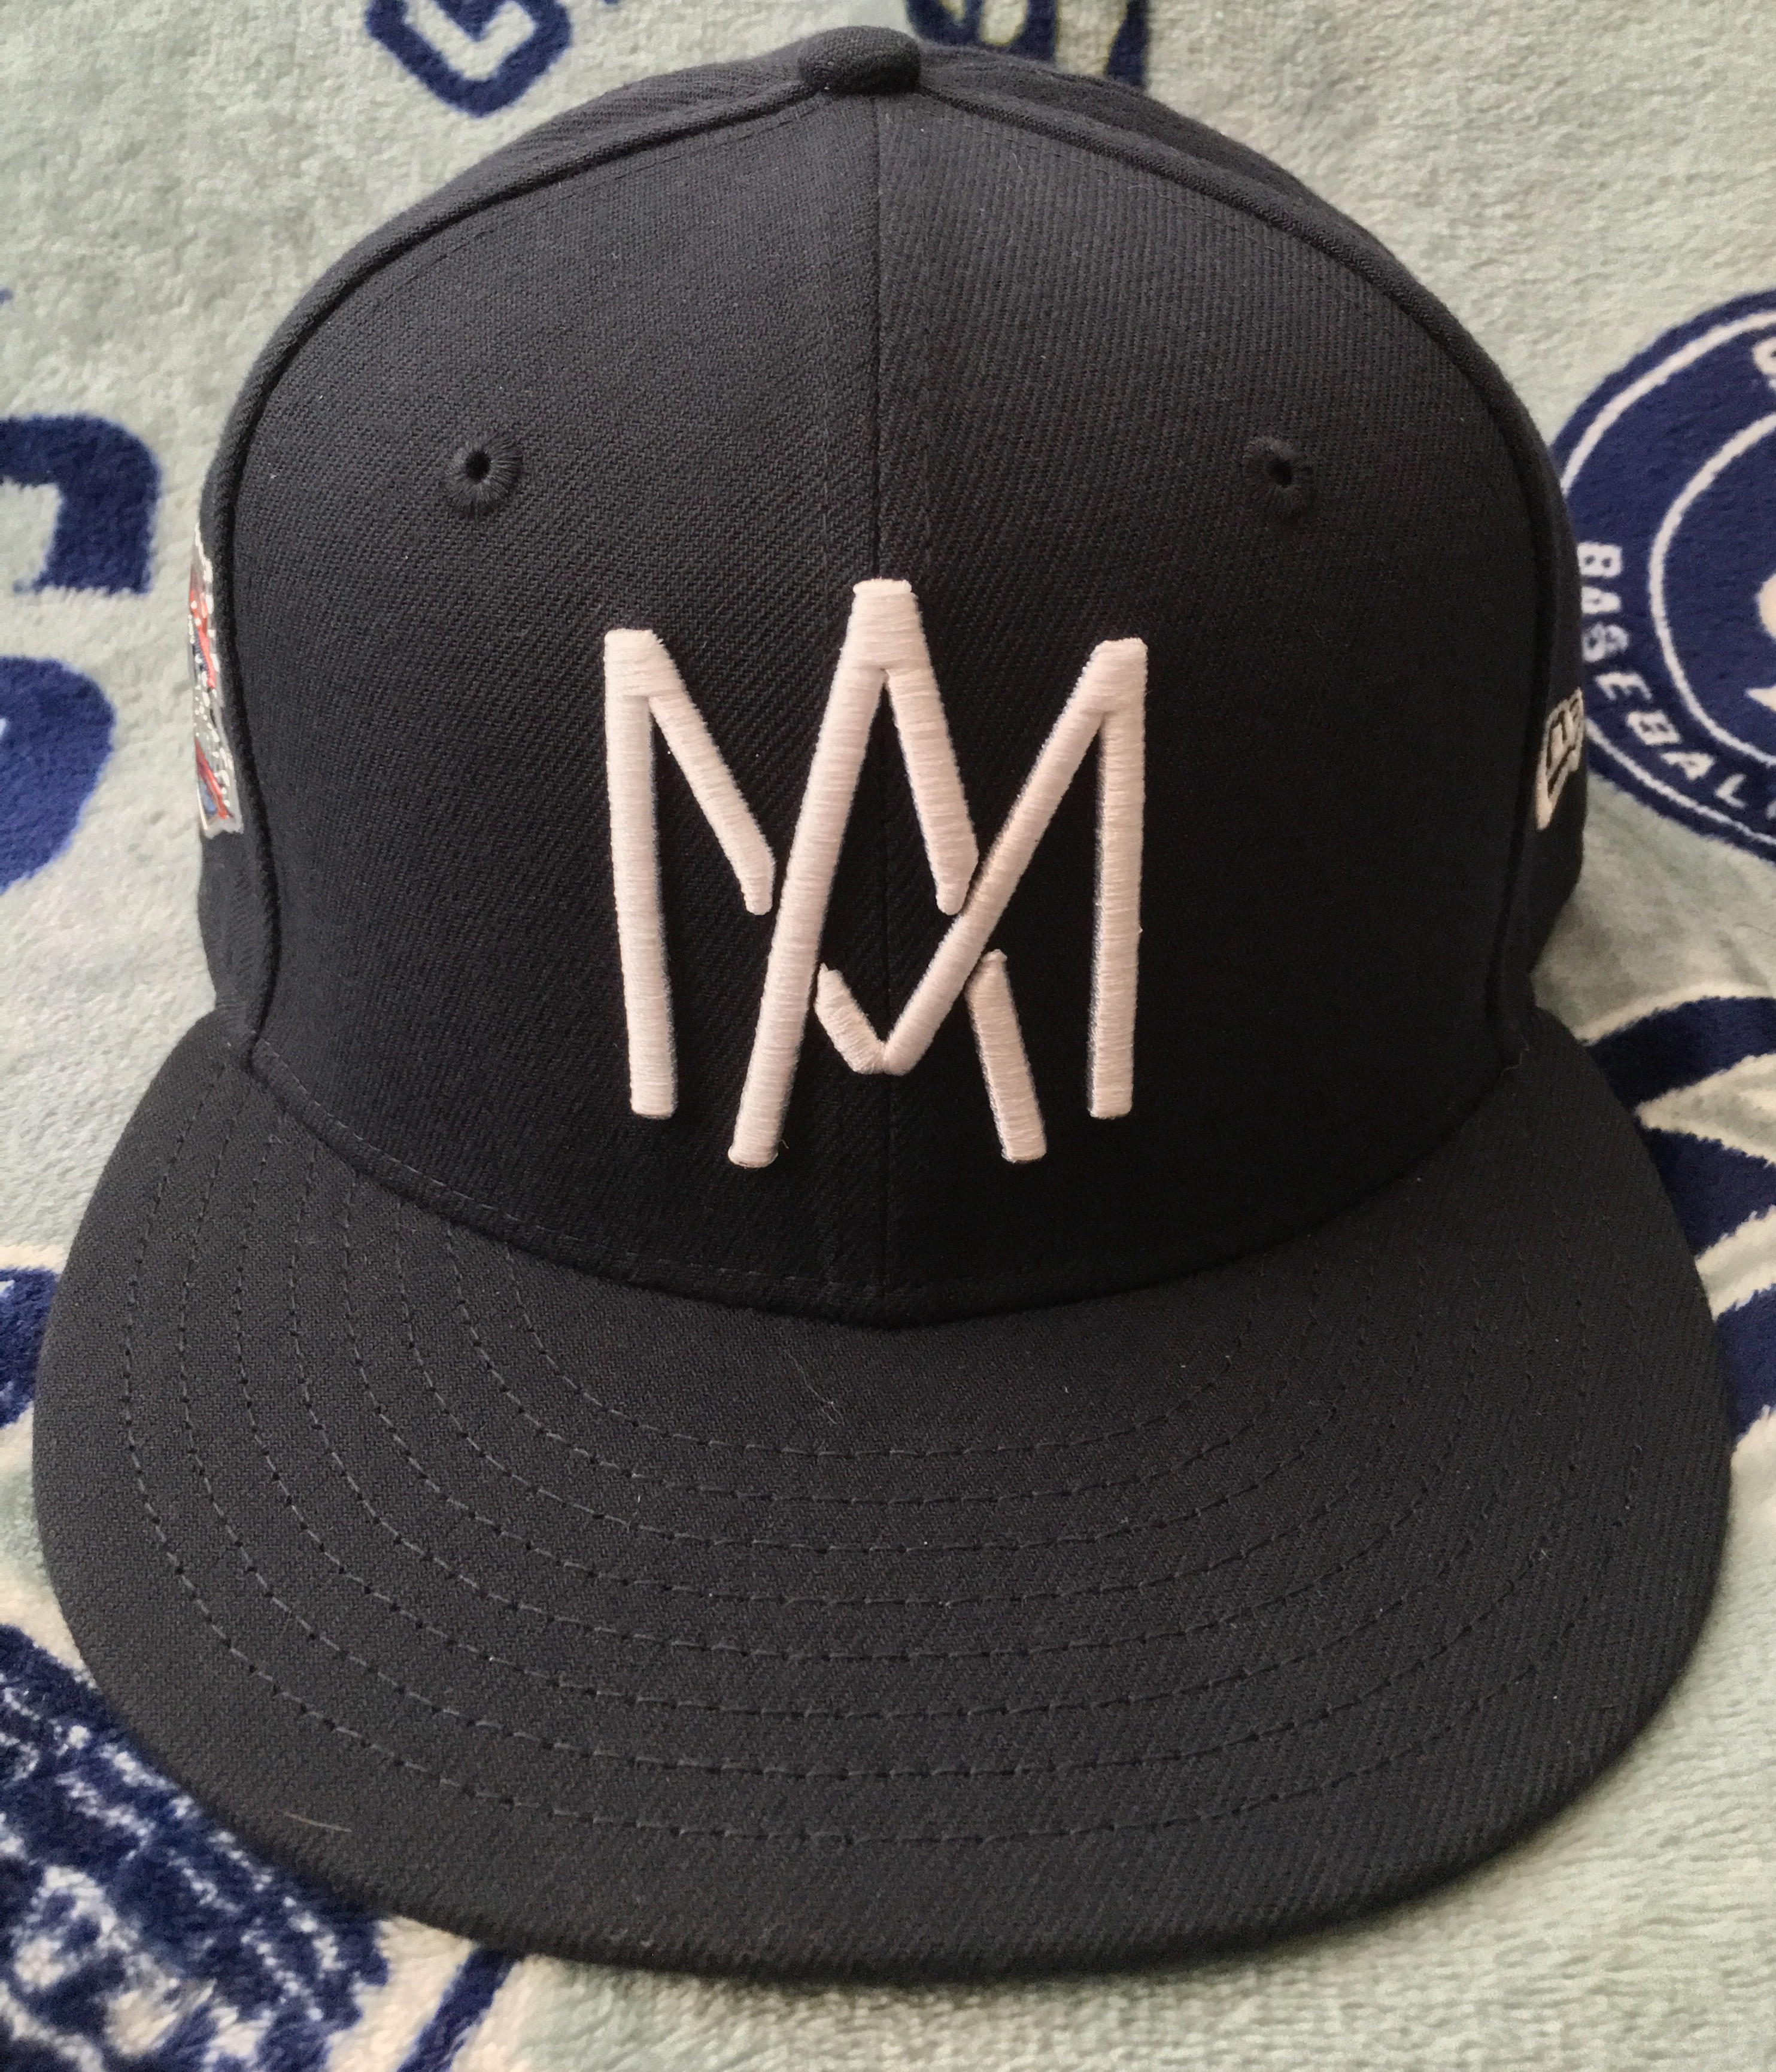 77ef237b877b15 My second favorite professional baseball team doesn't reside in Major League  Baseball, or even in the same country. The Águilas de Mexicali (Mexicali ...